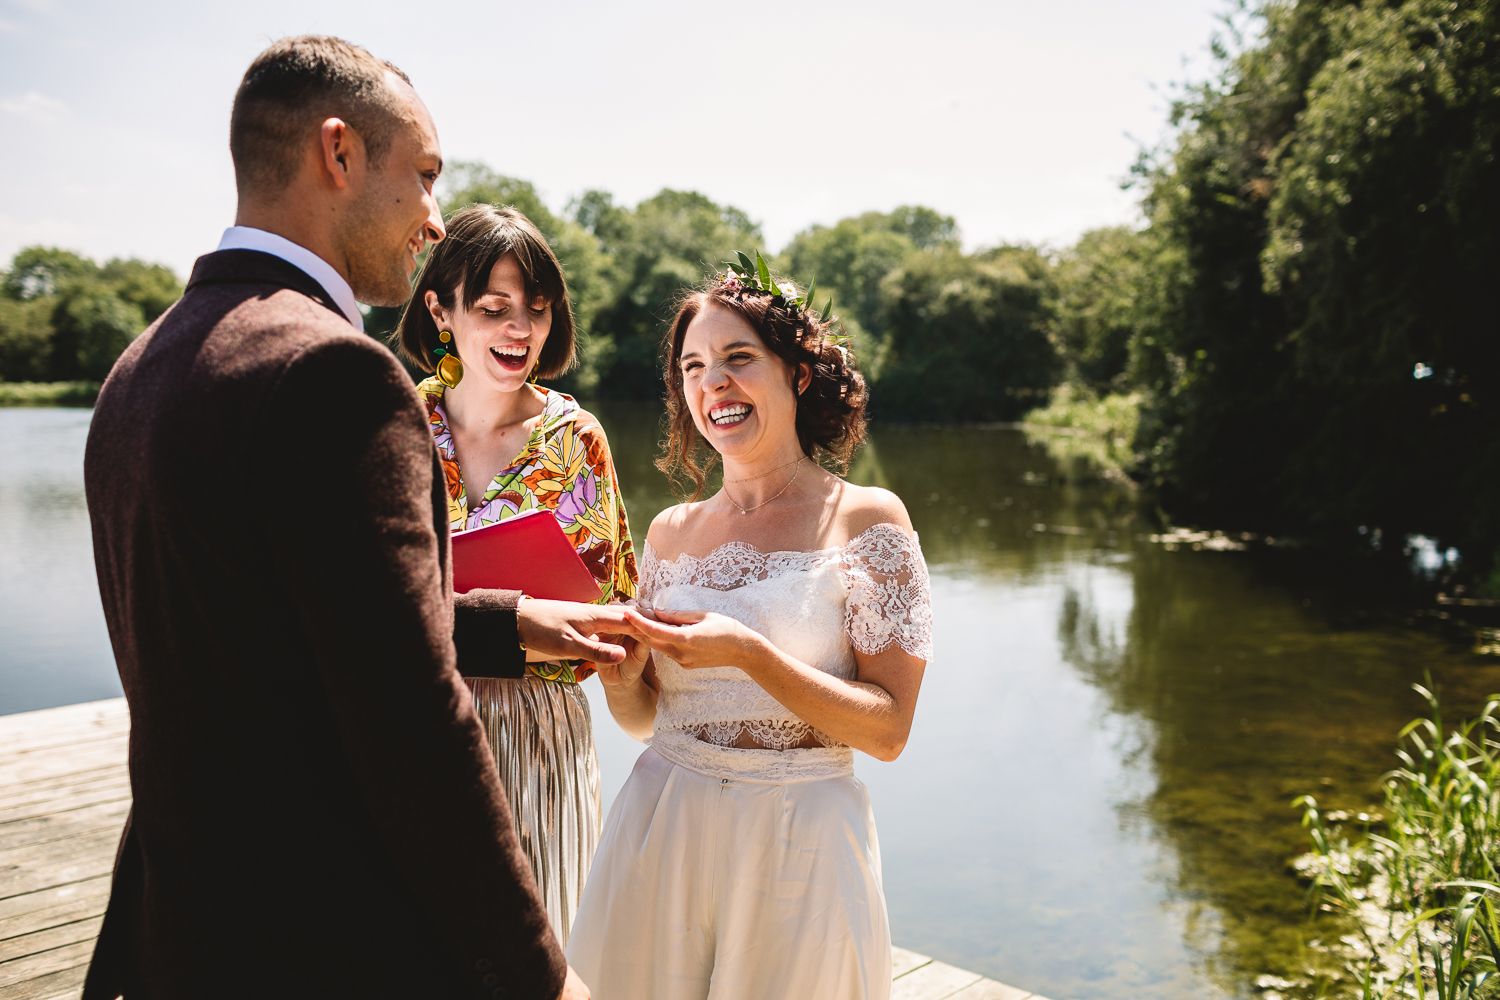 Alternative bride and groom exchanging rings outdoors at fun humanist festival wedding in Shropshire